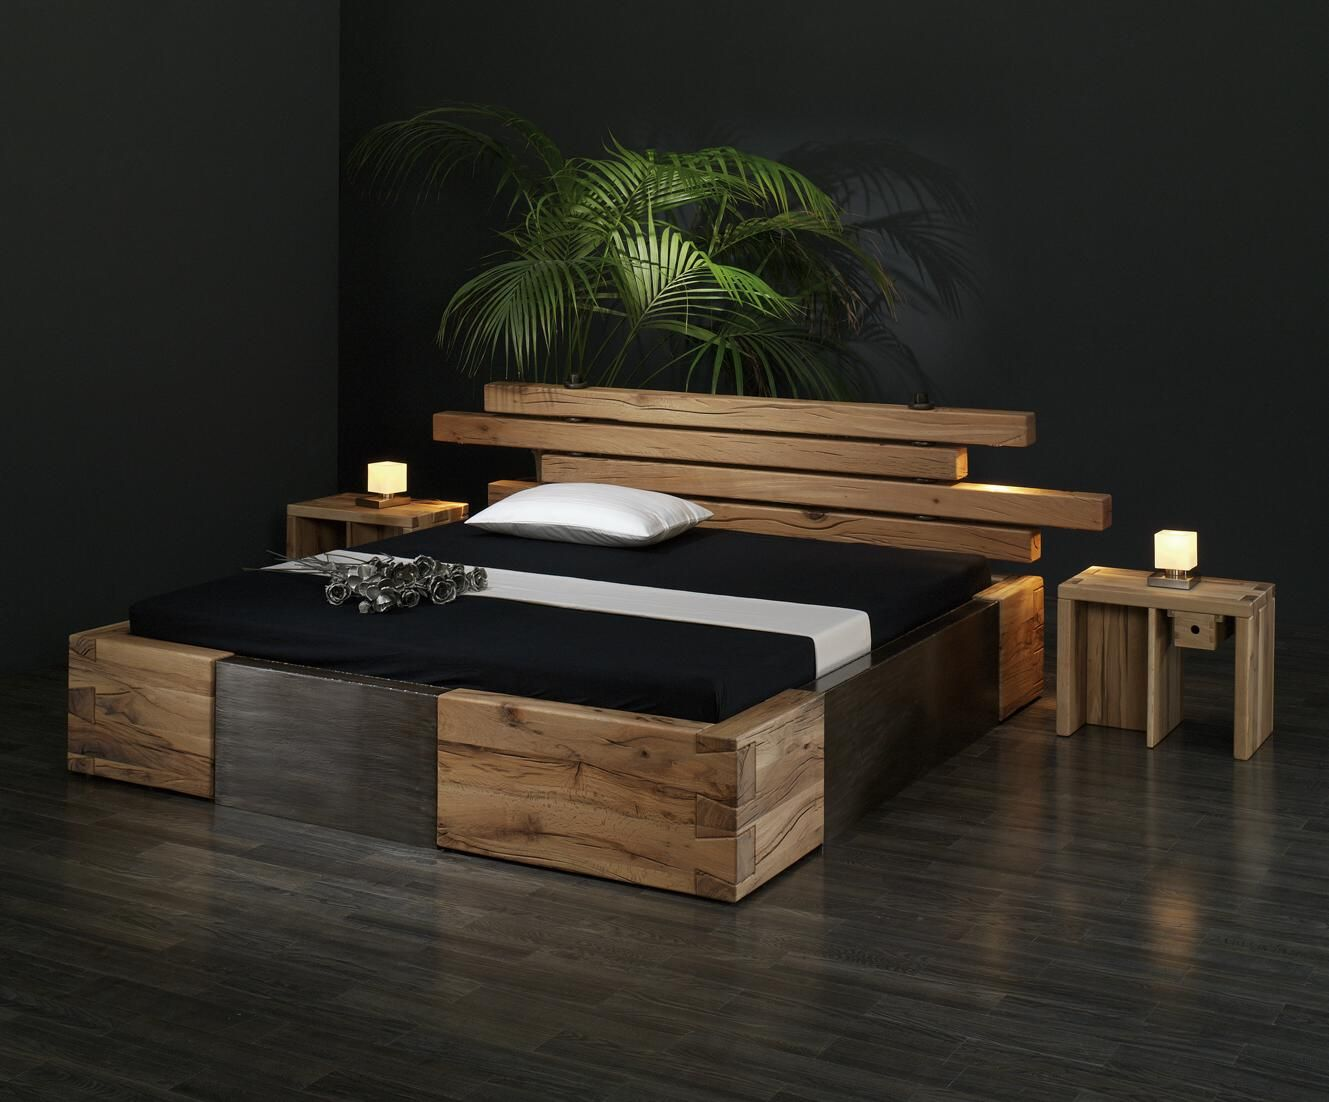 Schlafzimmer Holz Eiche Holz Bett Design Google Search Bedroom In 2019 Bett